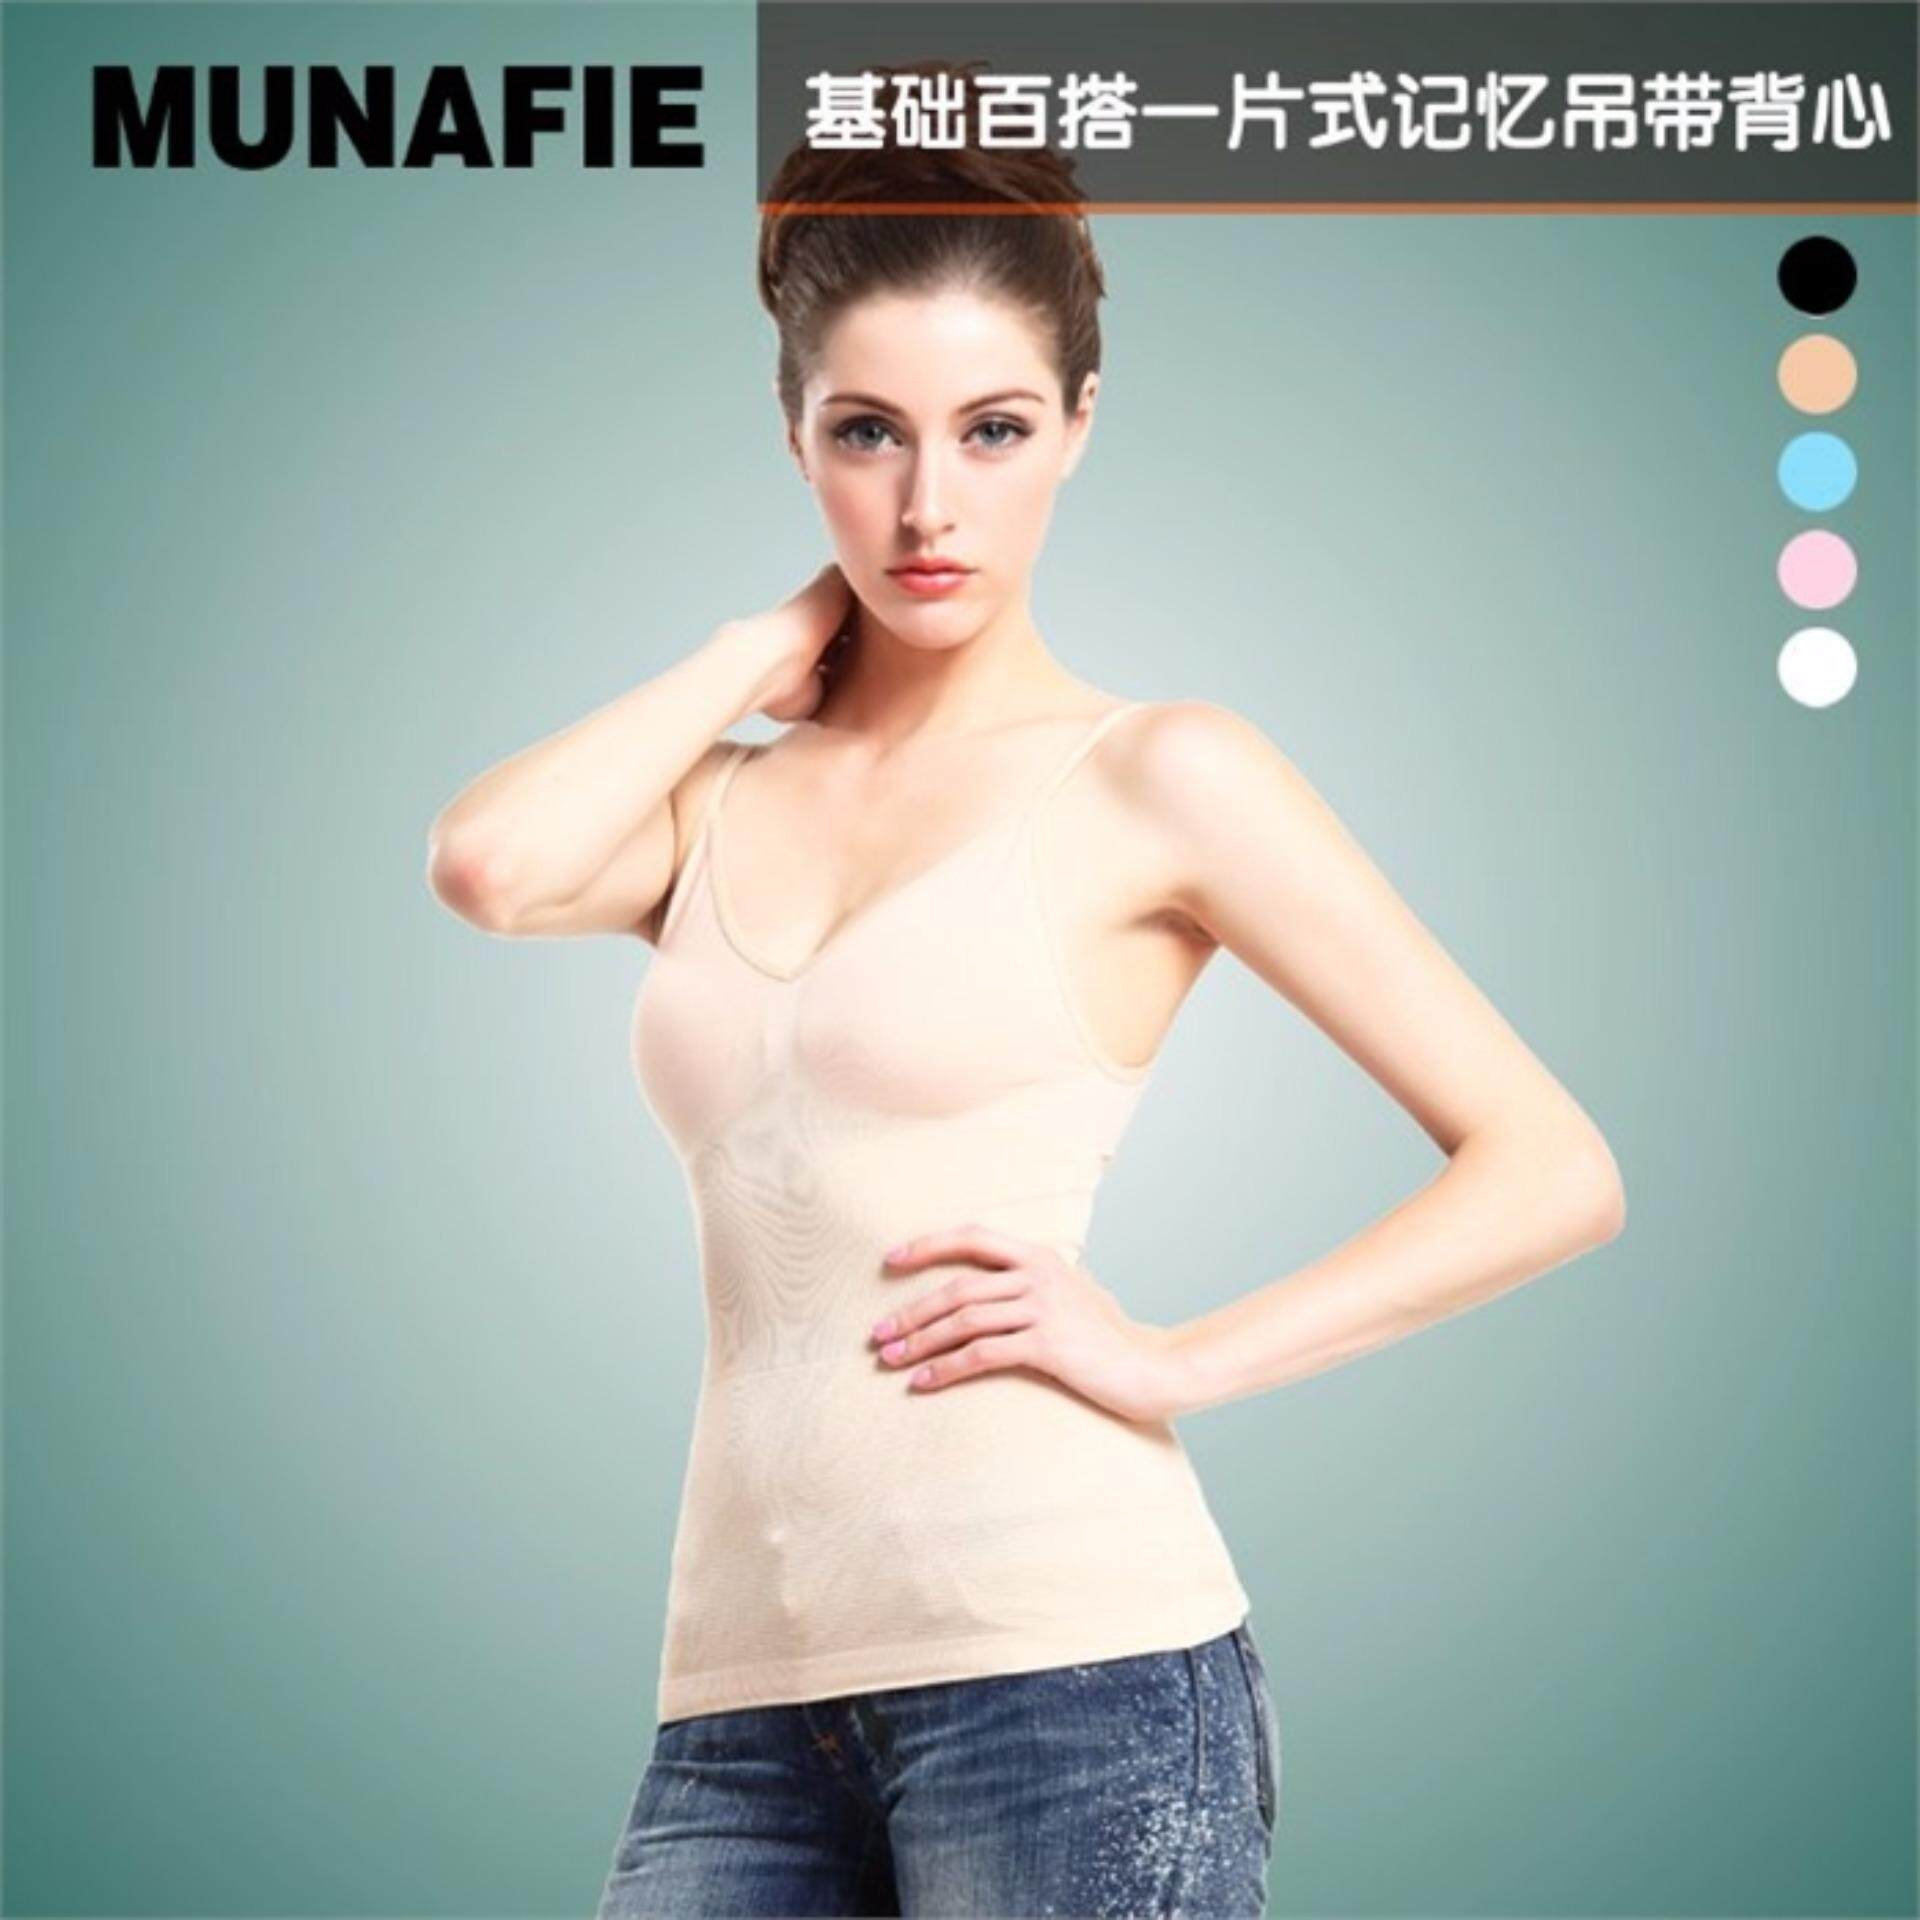 Japan ORI munafie single Waist Cincher Women's Under Bust Body Shape Wear - Skin Colour